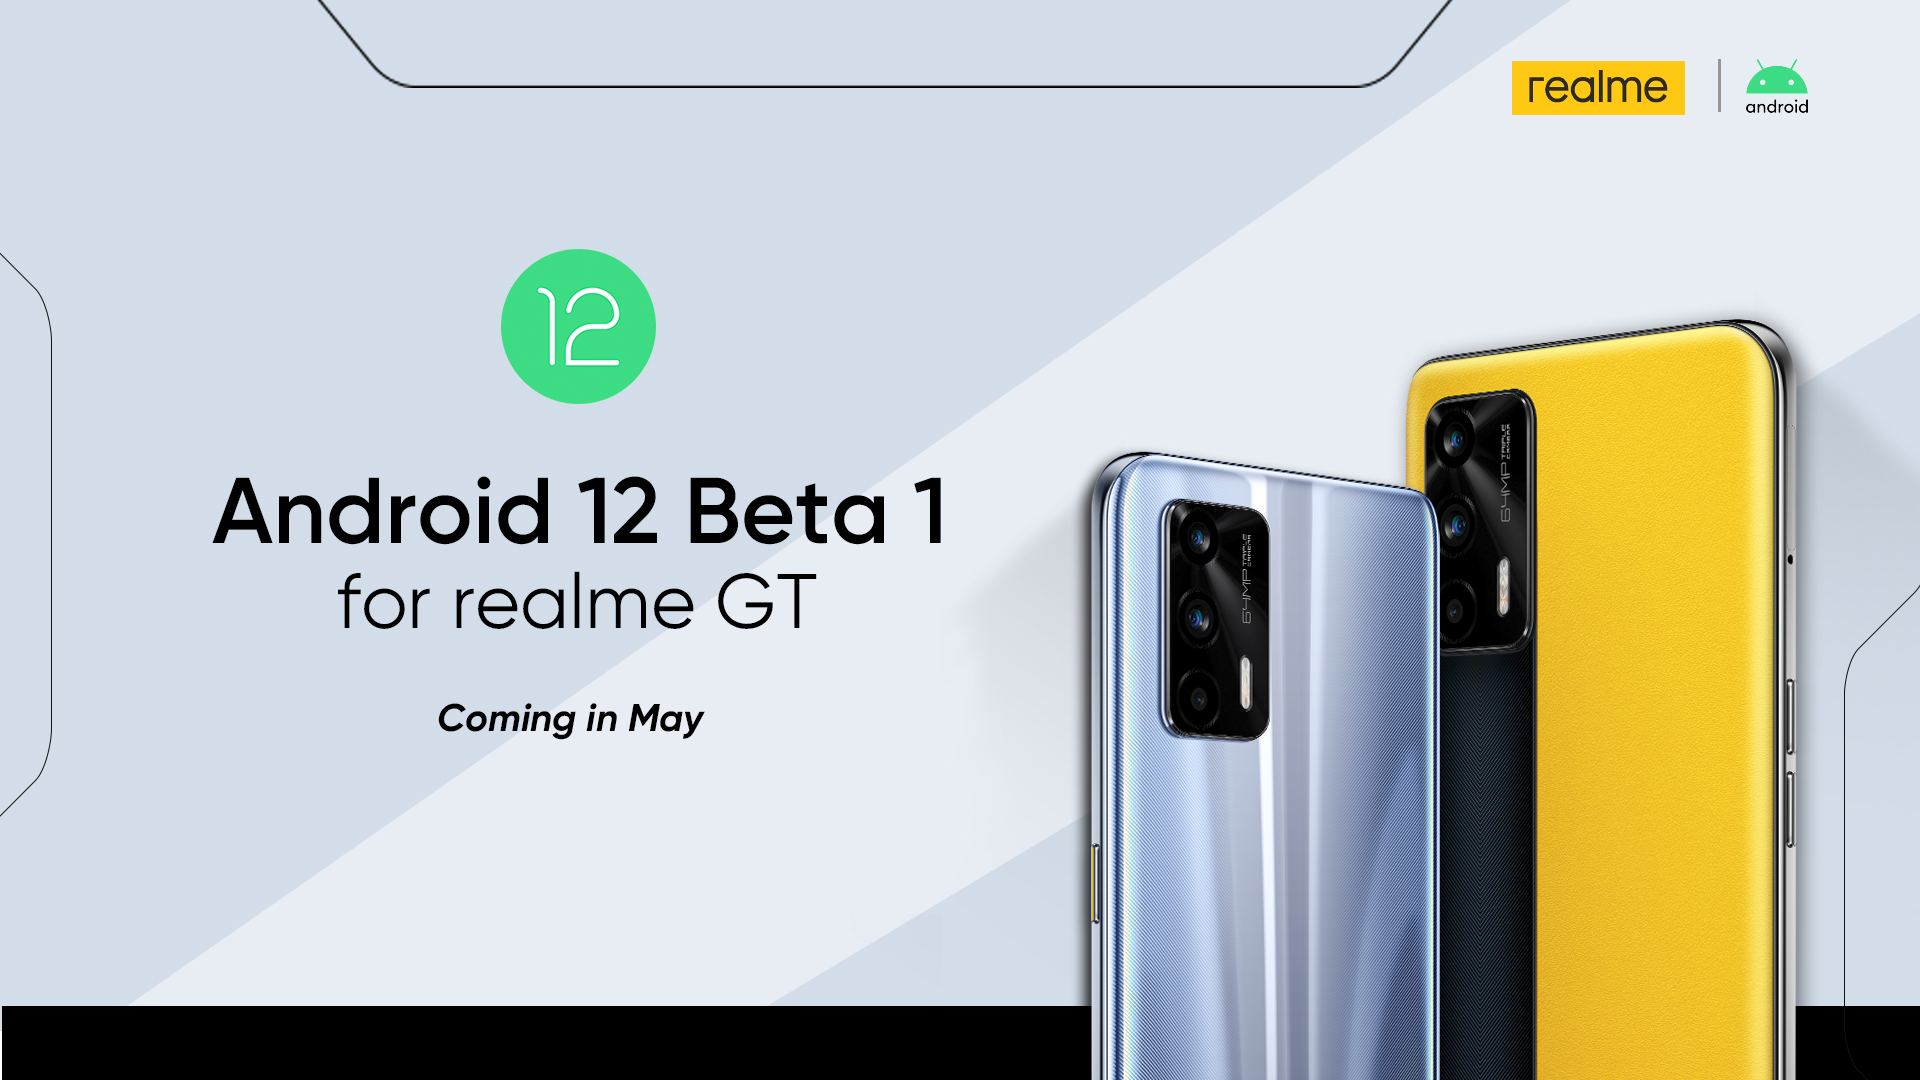 Realme GT Android 12 Beta